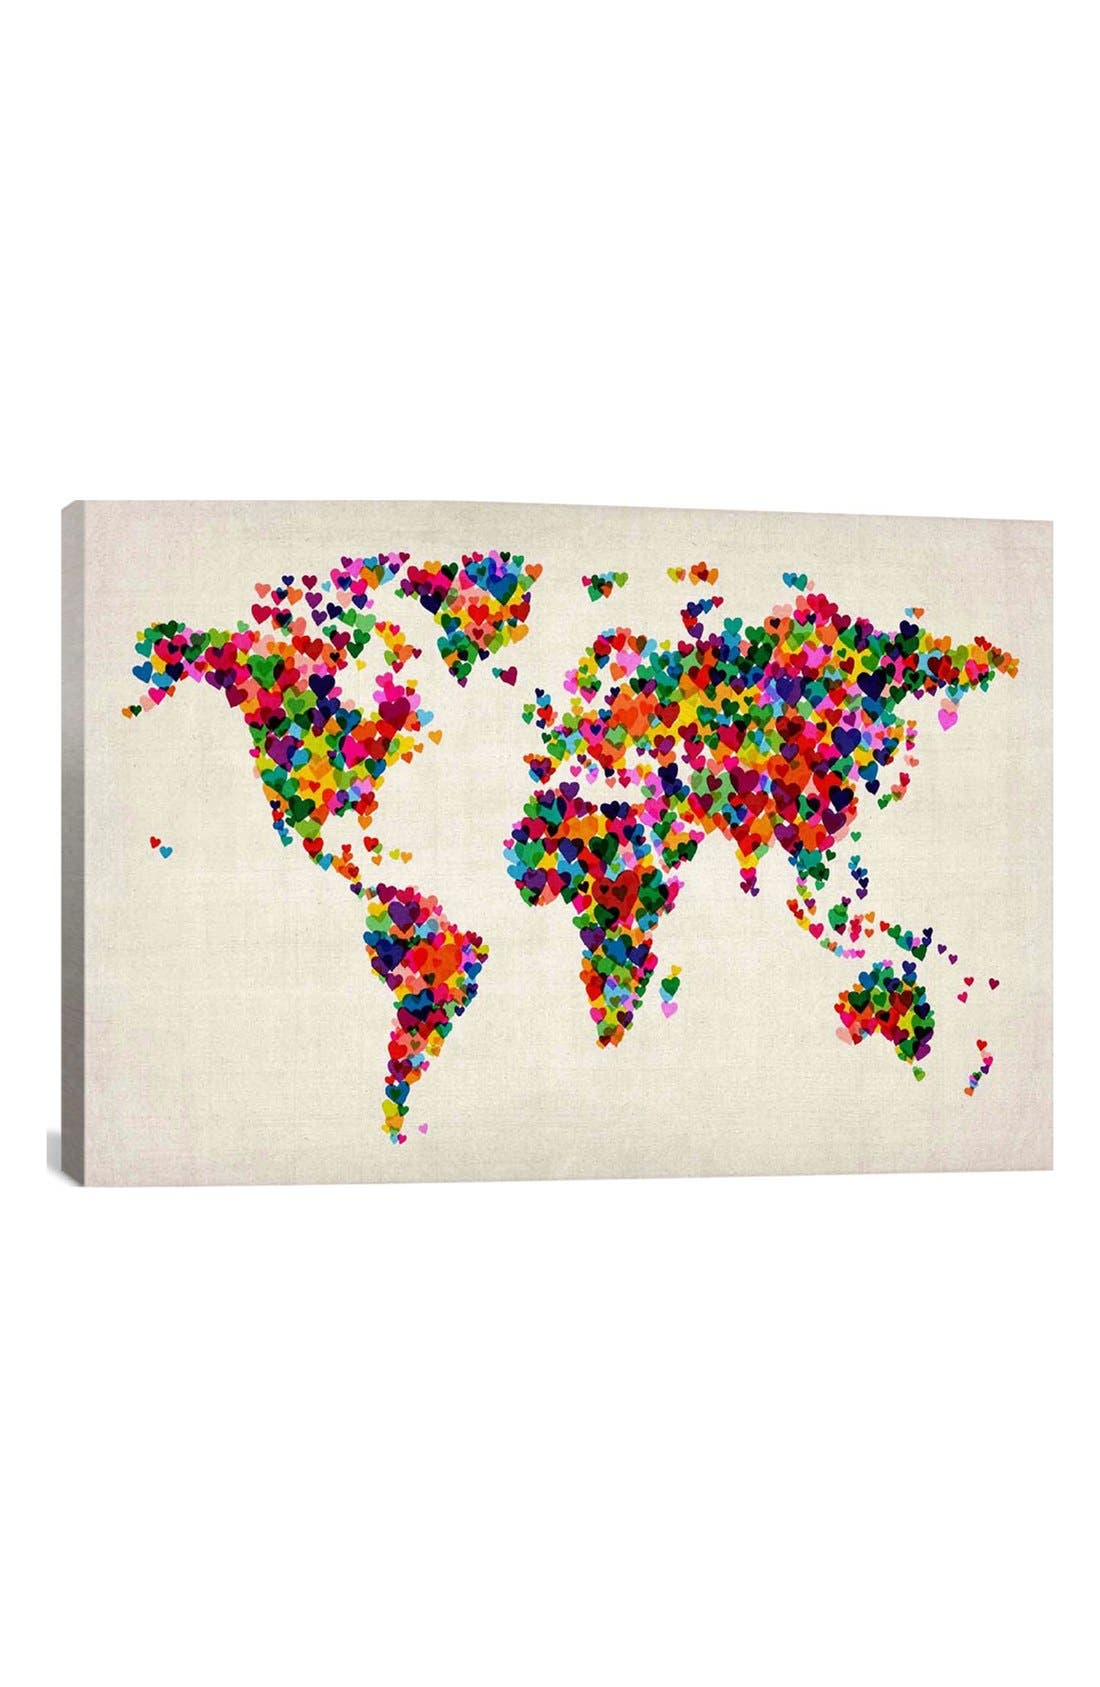 'World Map Hearts - Michael Thompsett' Giclée Print Canvas Art,                             Main thumbnail 1, color,                             White/ Multi